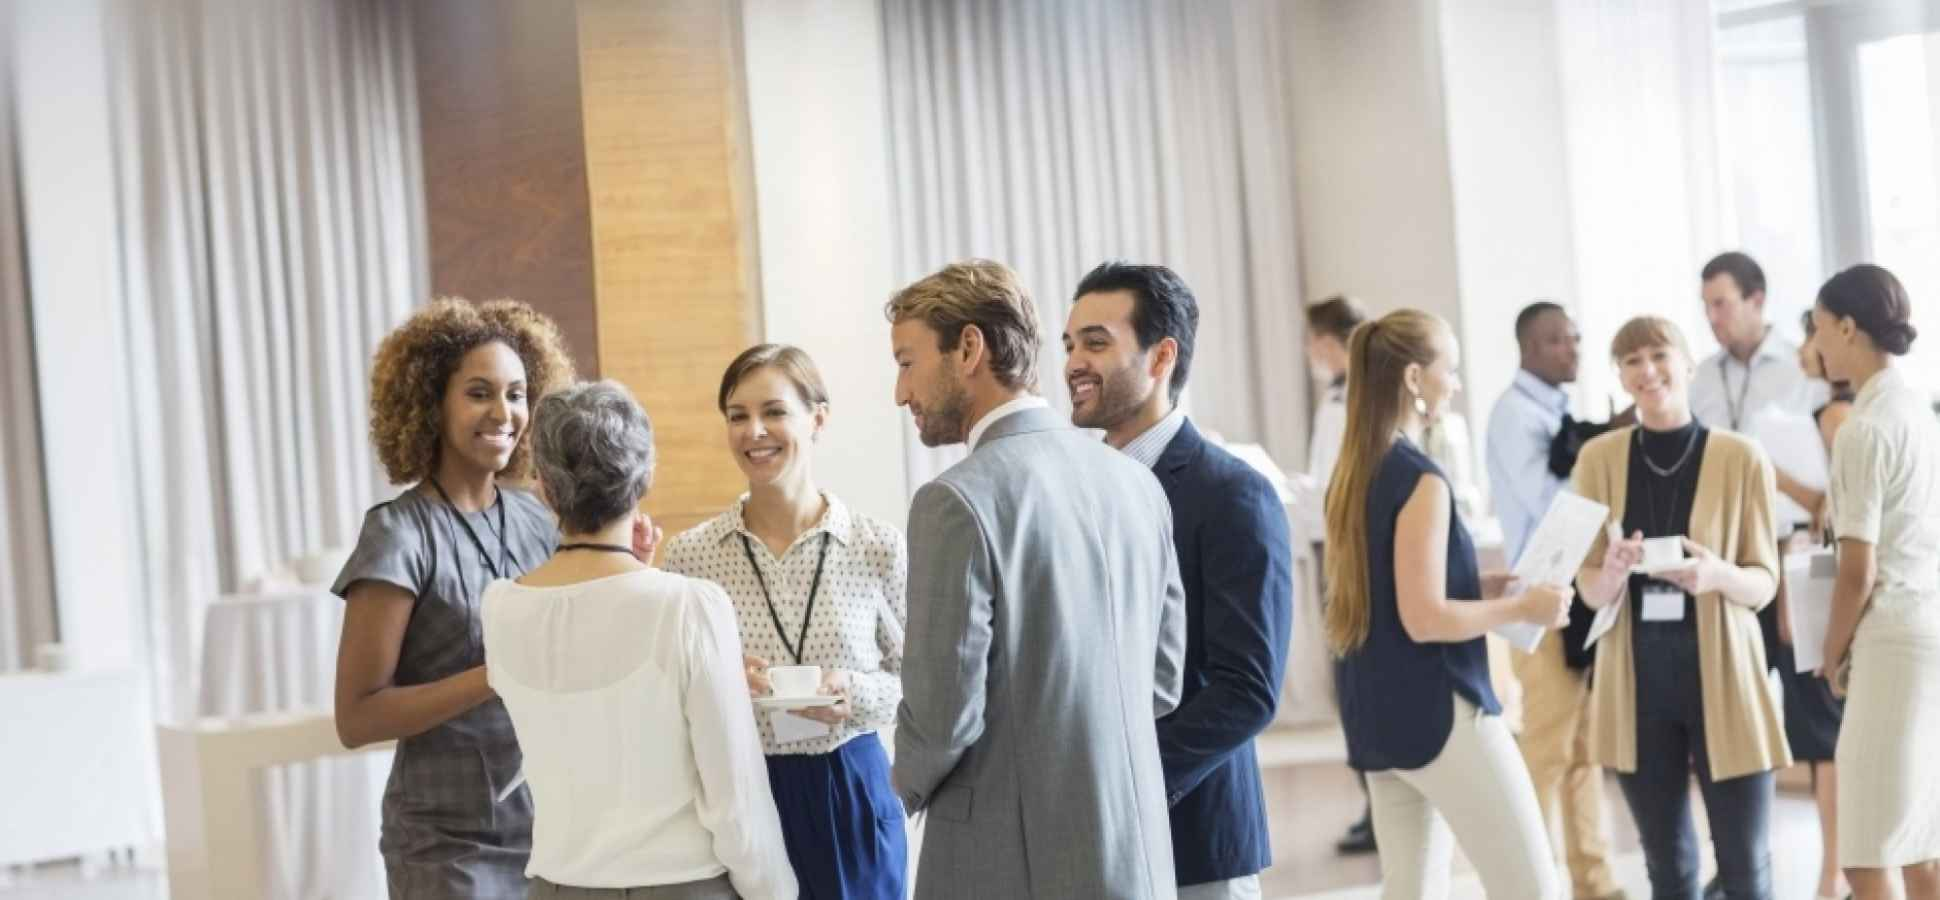 17 Ways You Embarrass Yourself While Networking